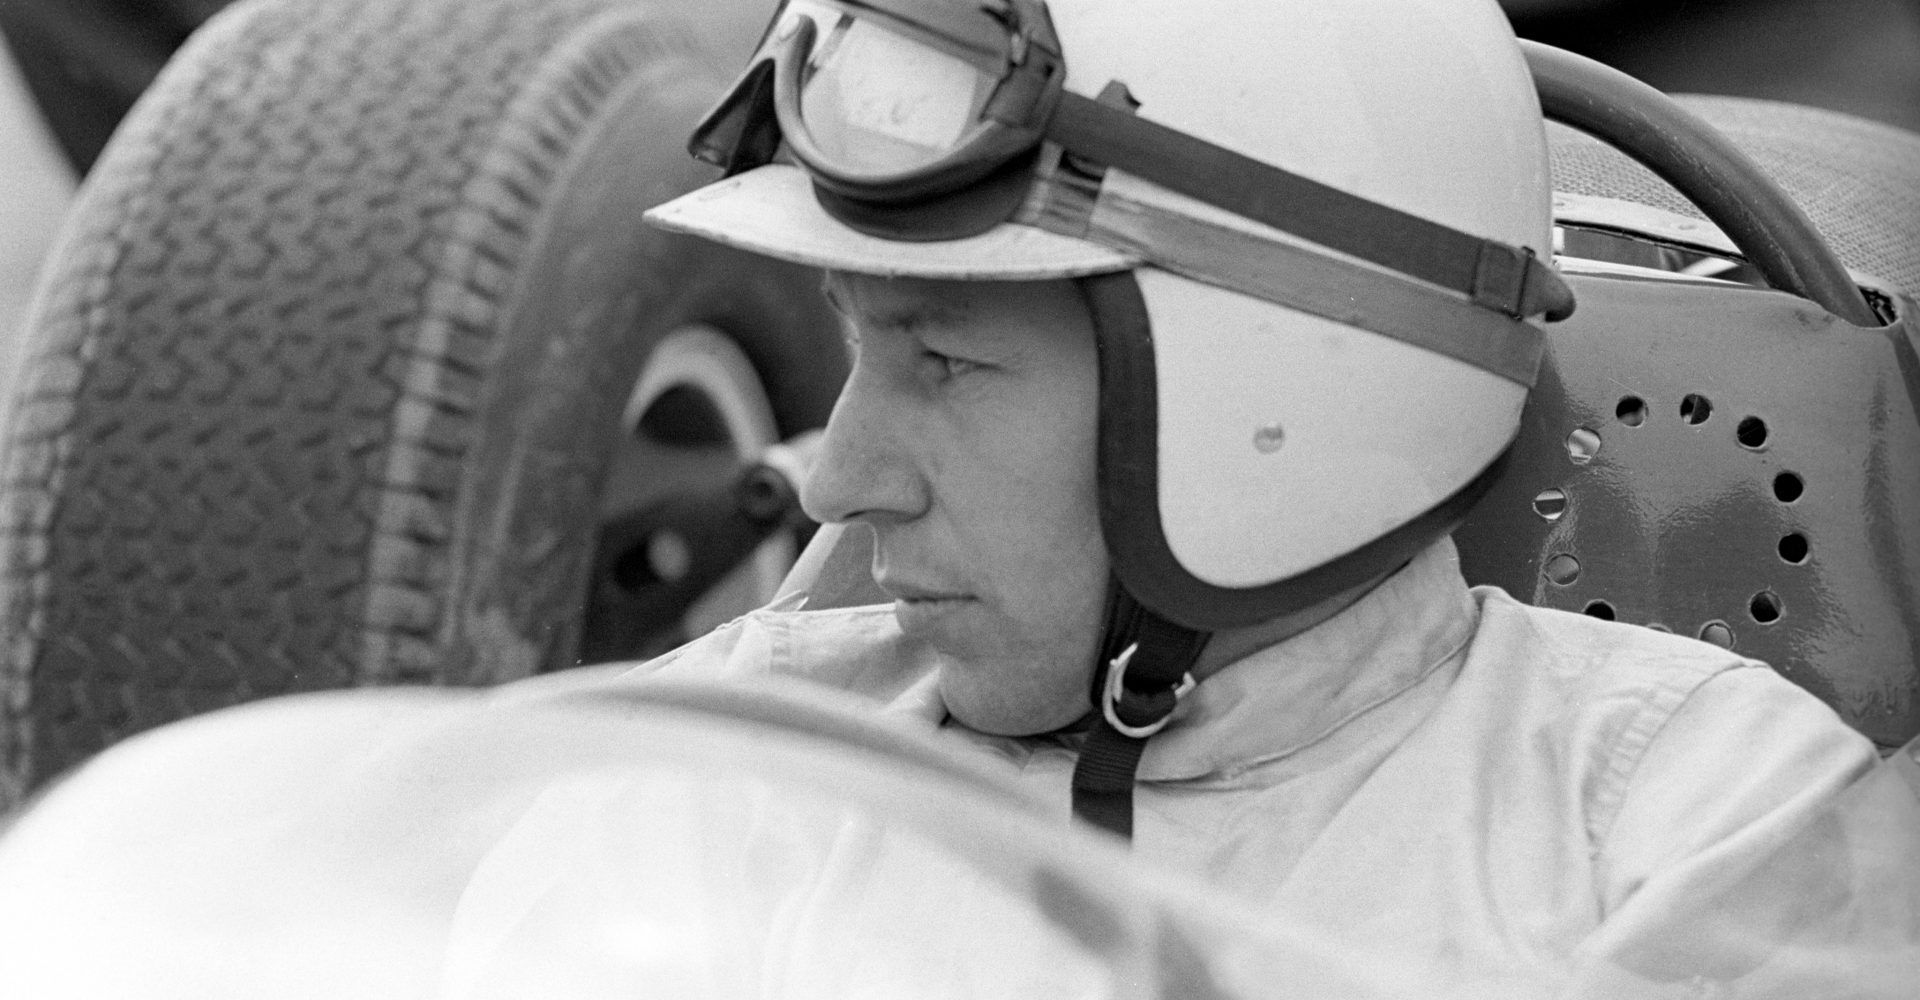 R.I.P. Motorsport Legend John Surtees